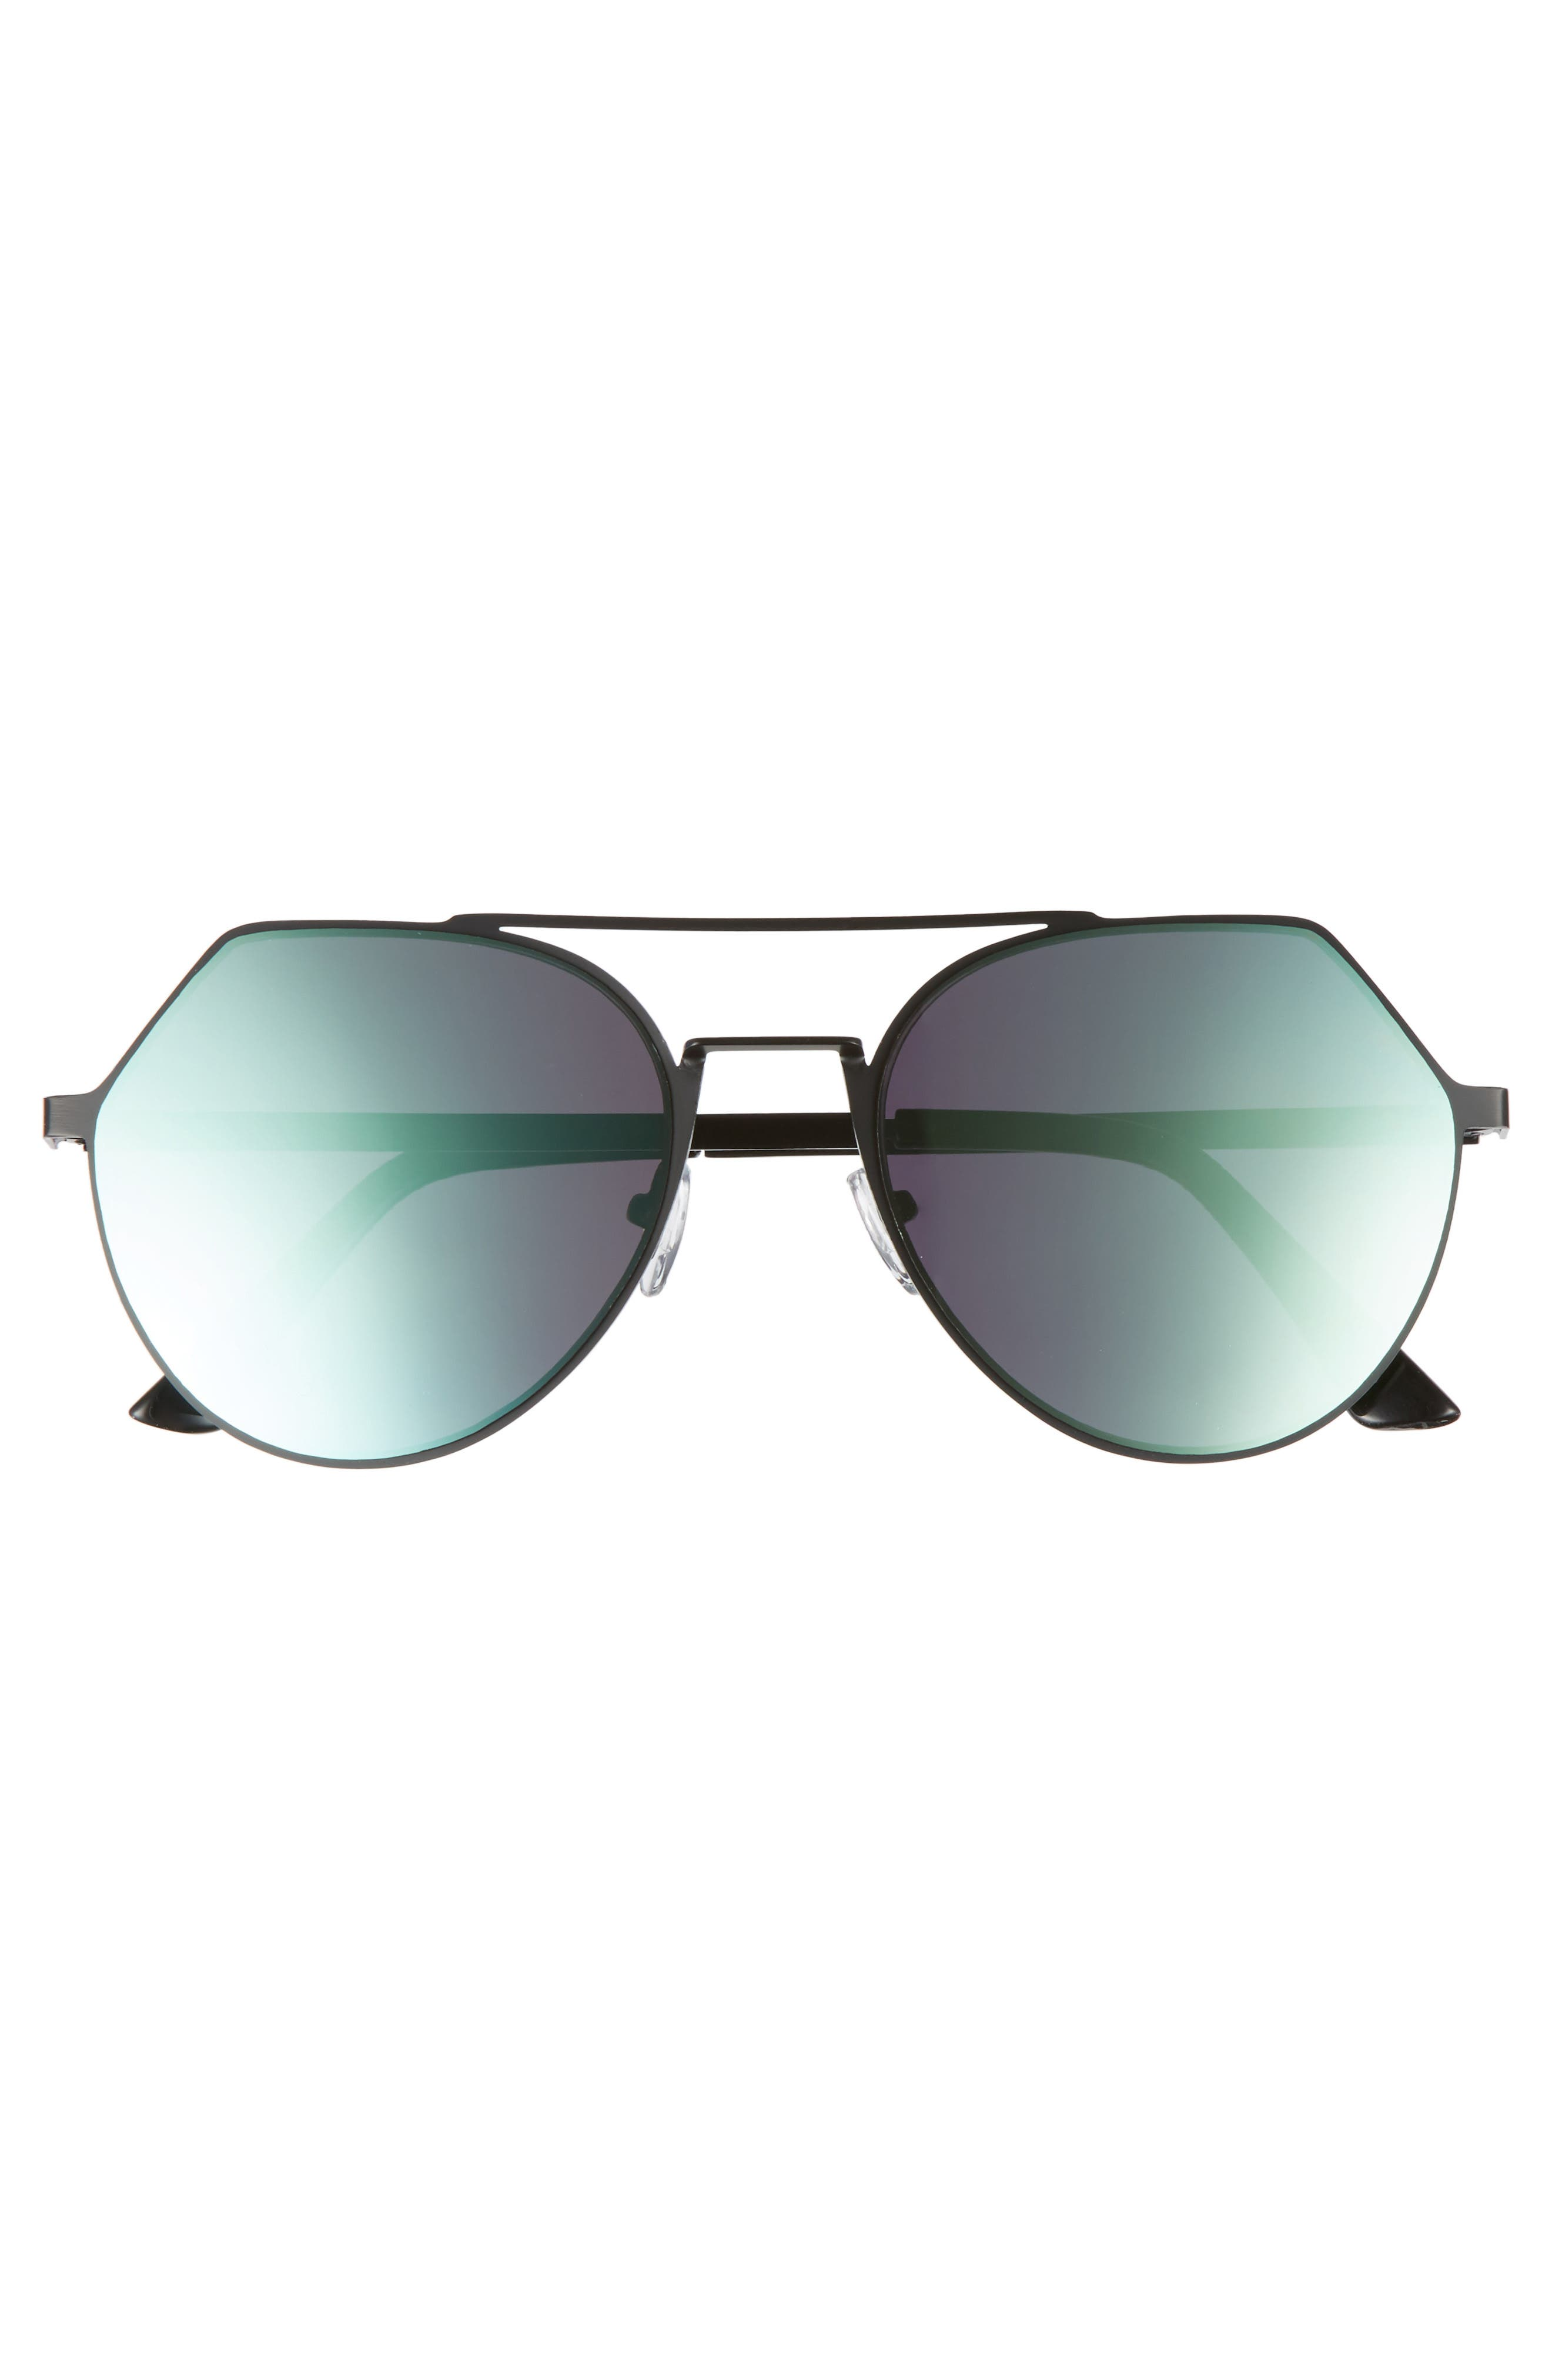 Mirrored Aviator Sunglasses,                             Alternate thumbnail 3, color,                             Black/Green